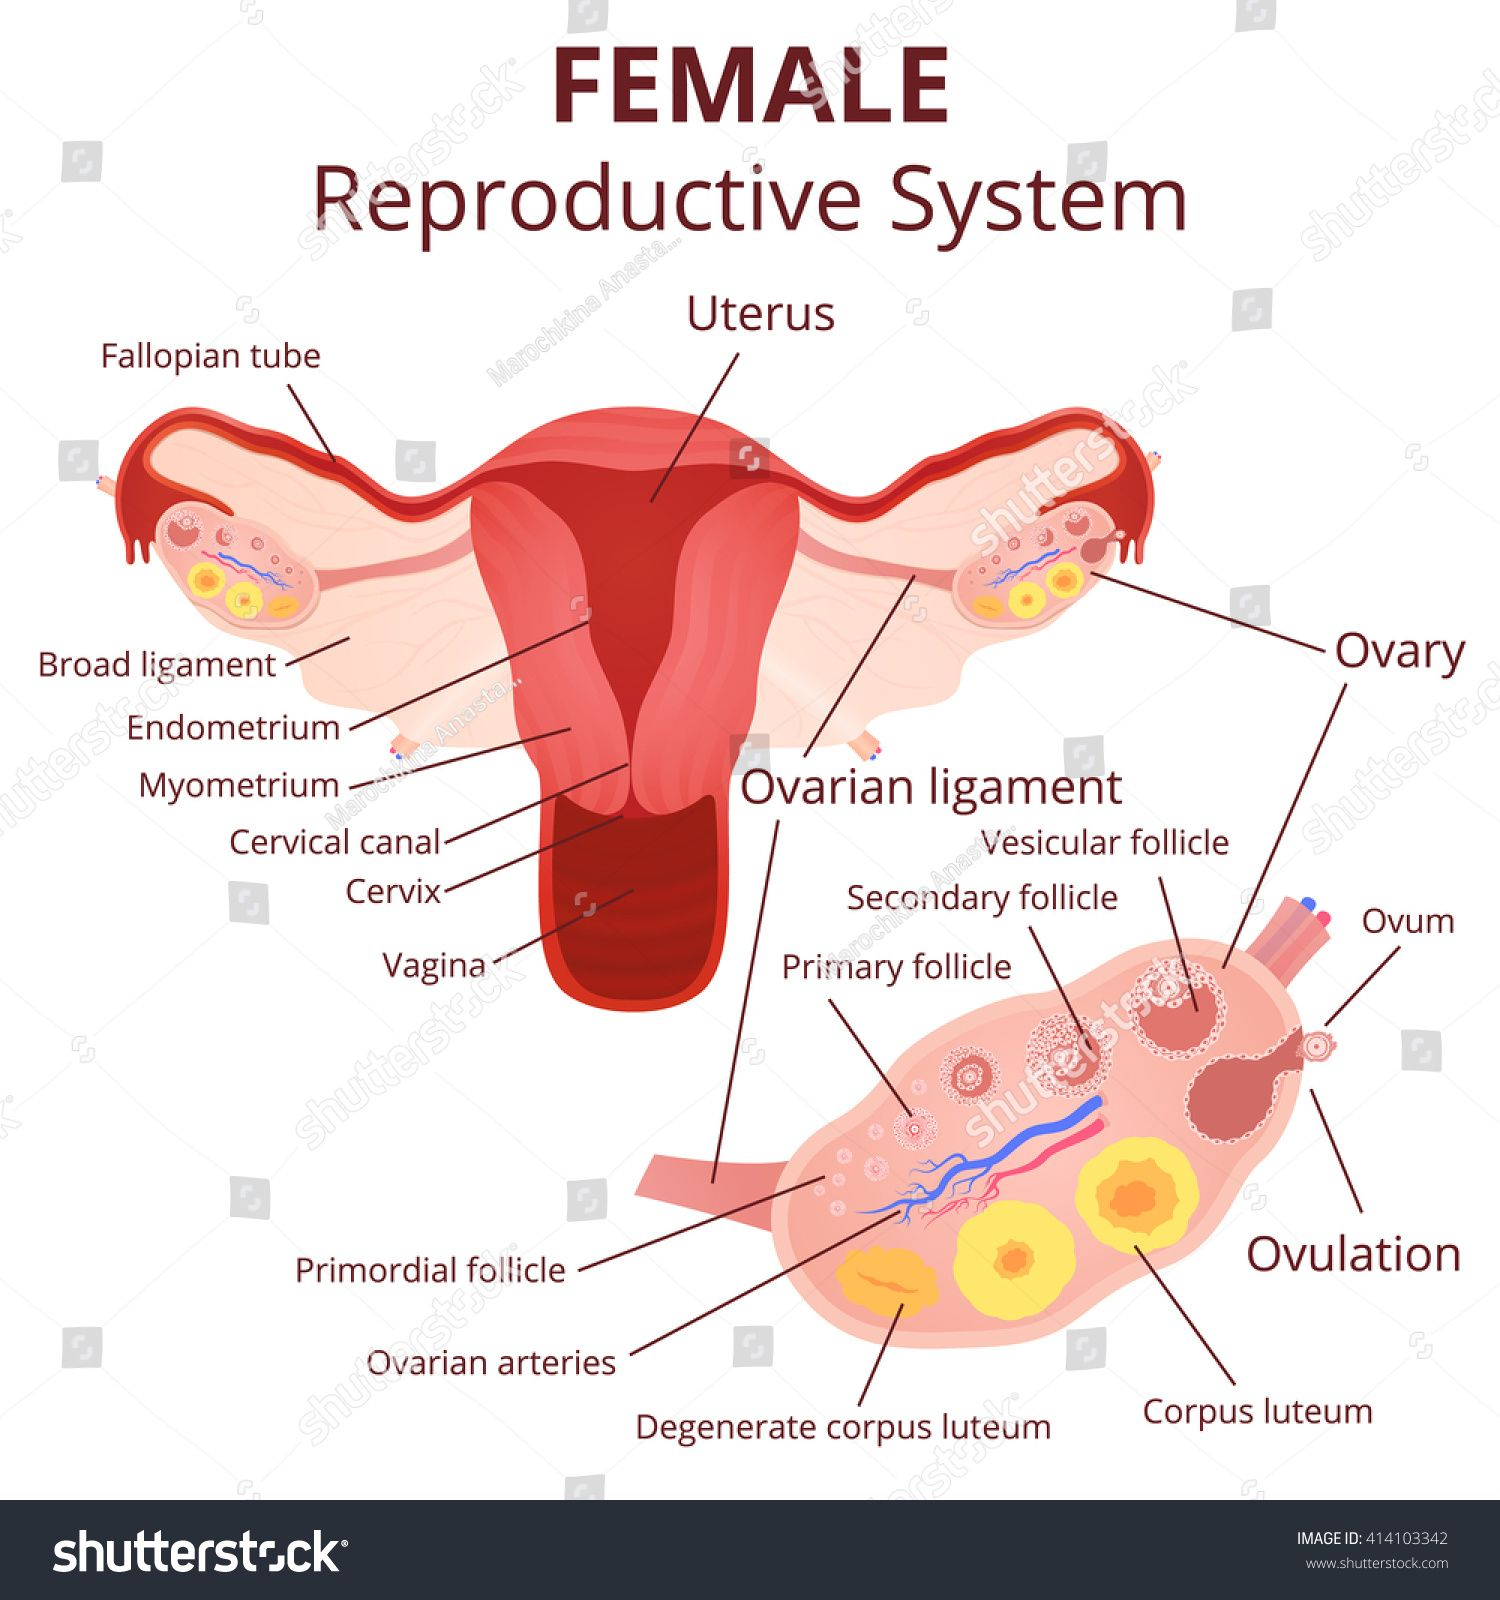 Image Of Female Reproductive System Diagram Koibana Info Reproductive System Female Reproductive System Female Reproductive System Anatomy